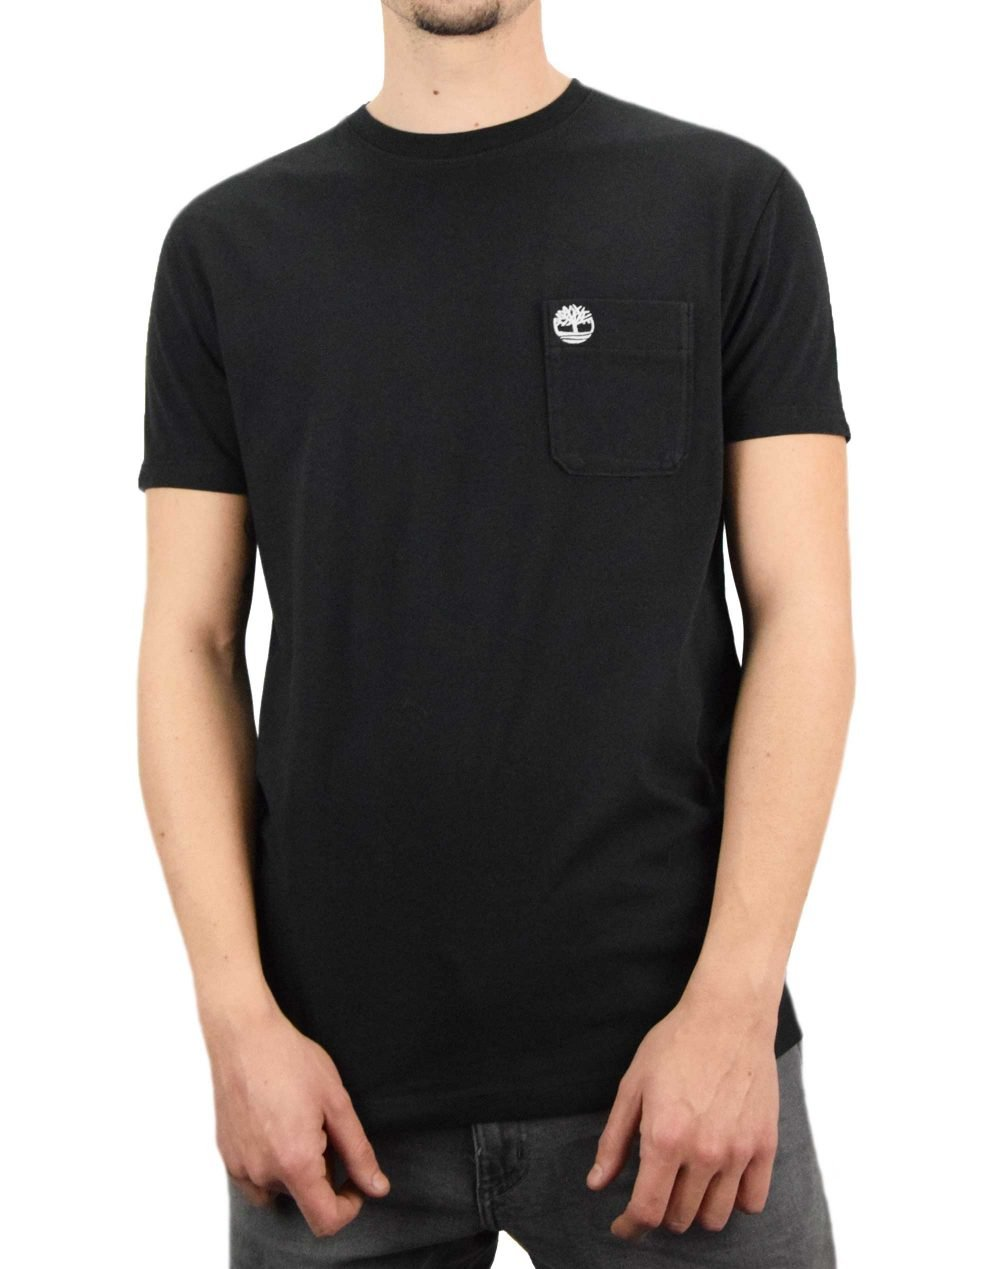 Timberland Dun-River Pocket Tee (TB0A2CQY 001) Black